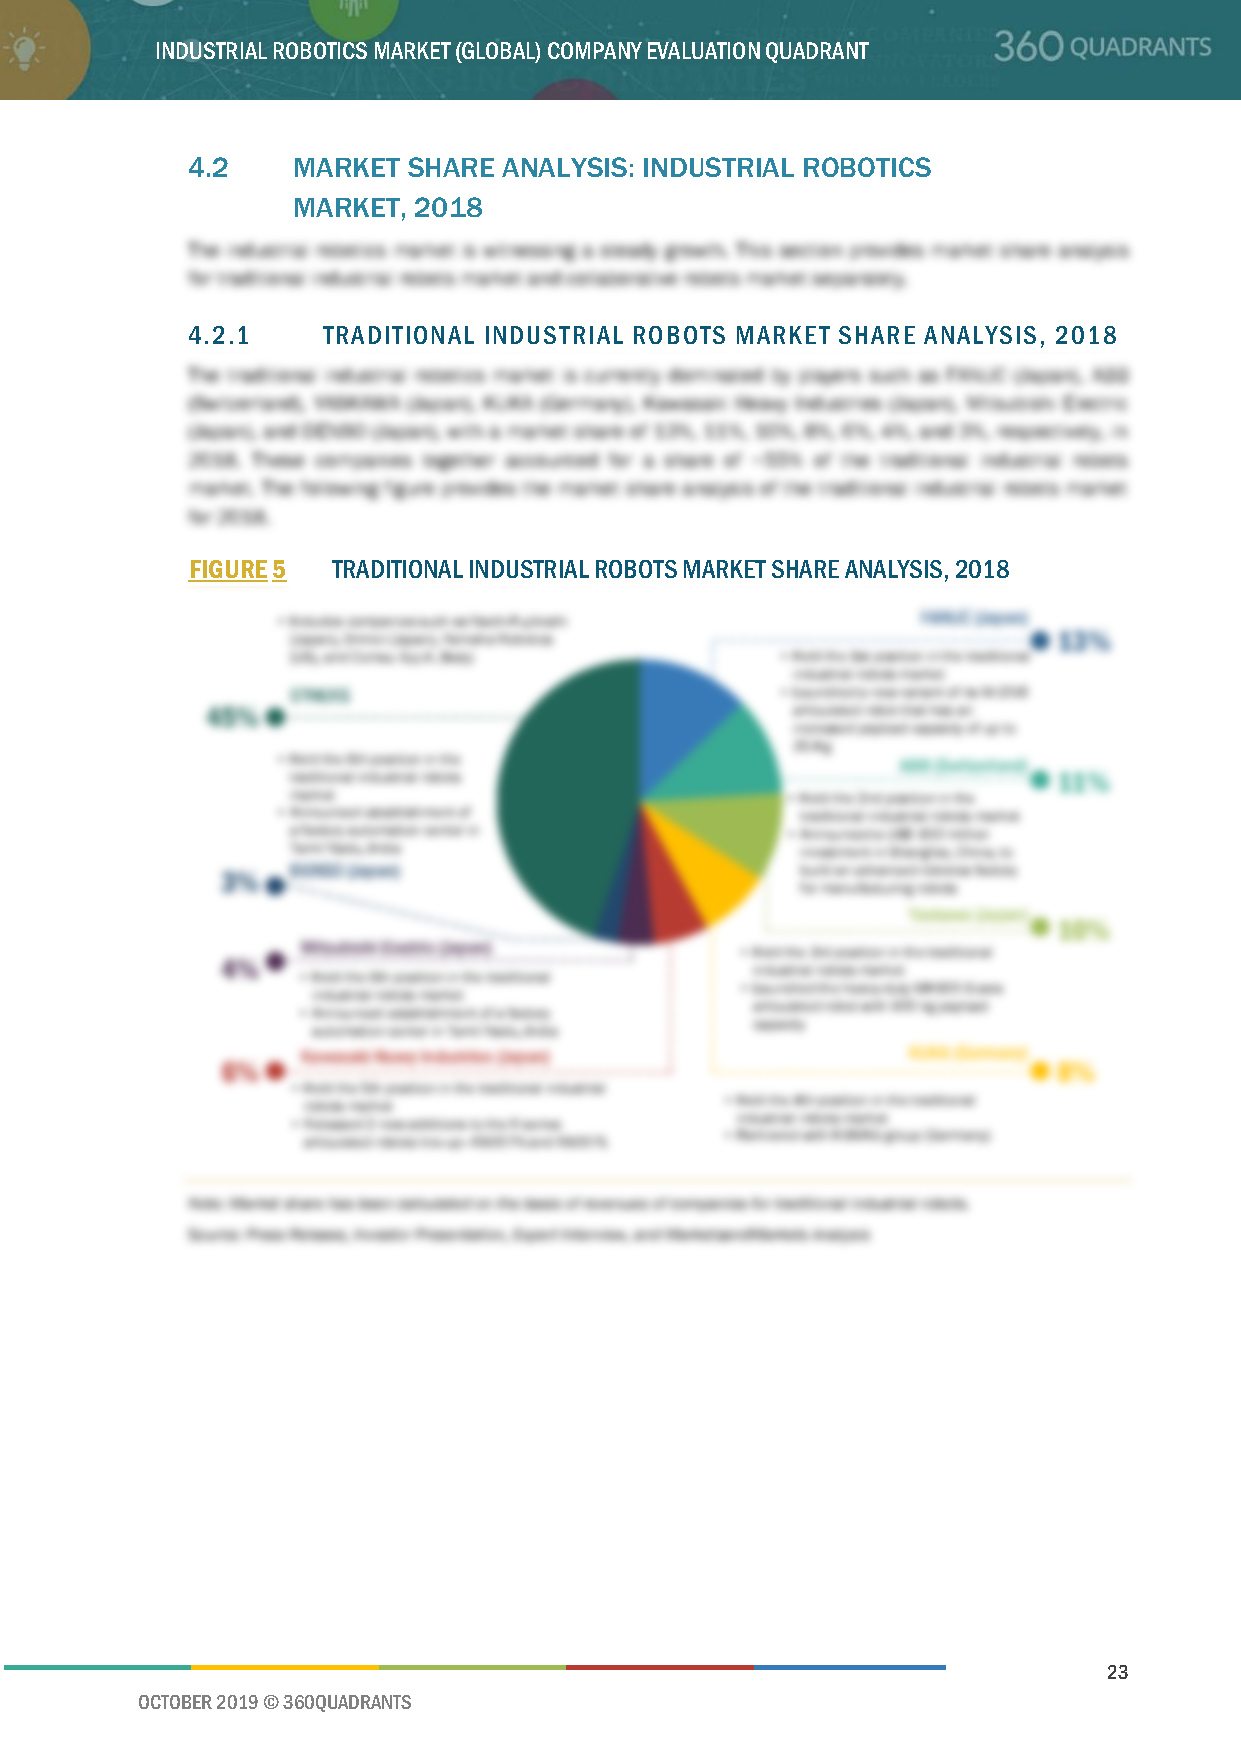 Industrial Robotics Competitive Leadership Mapping